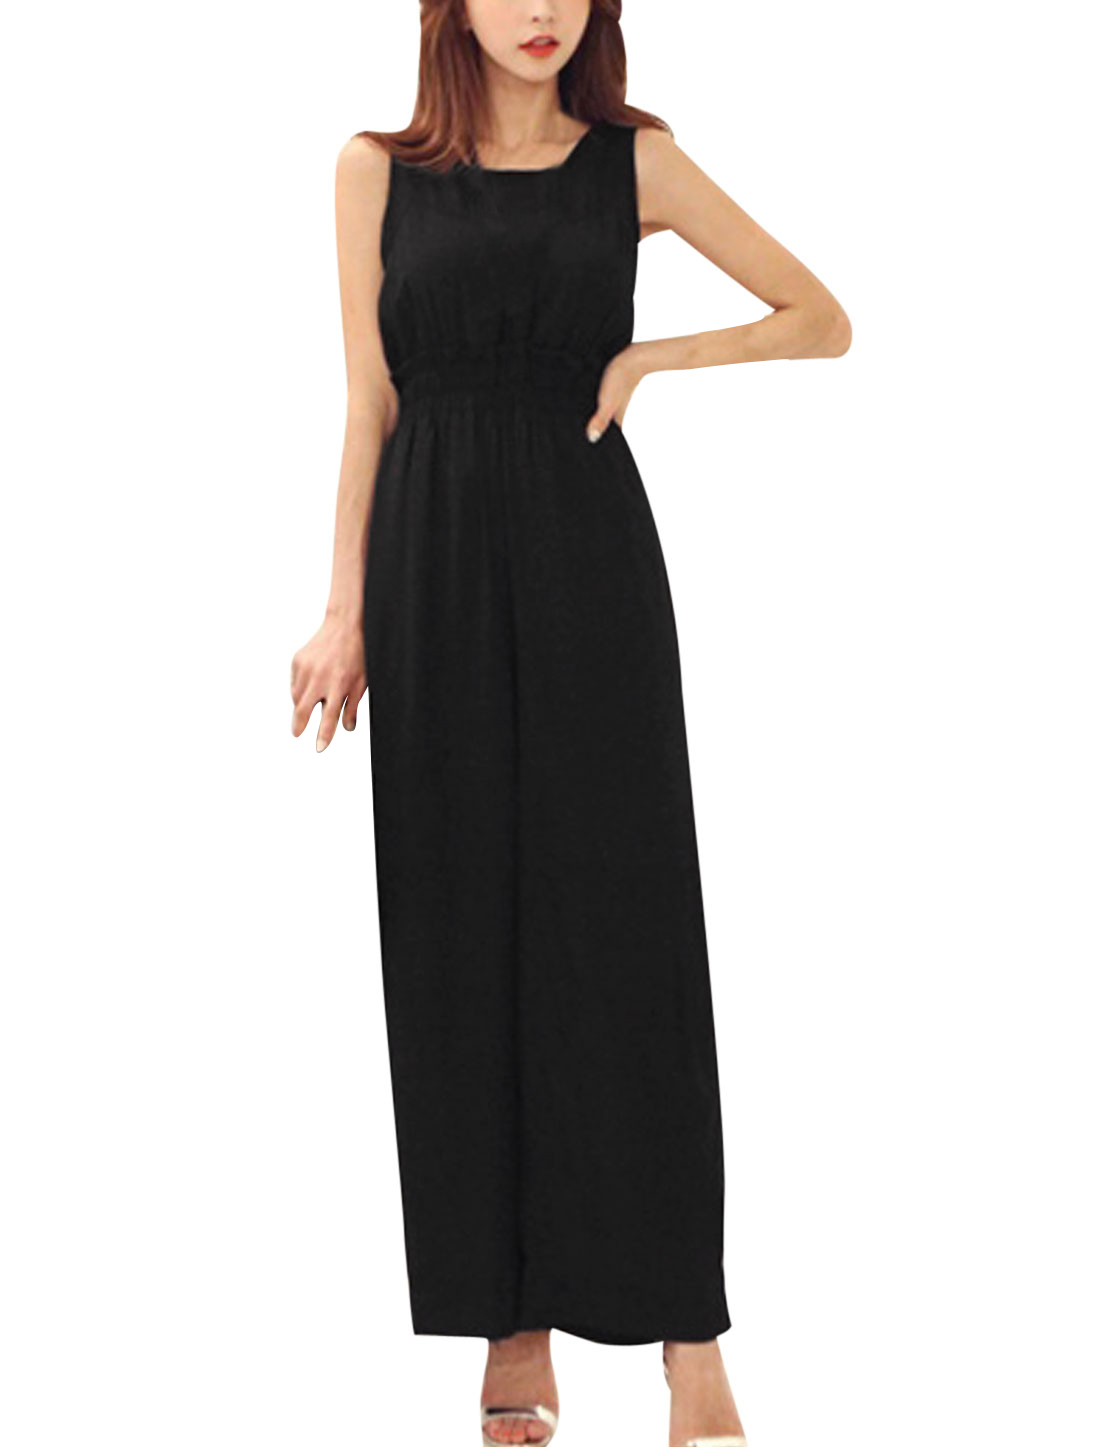 Women Sexy Cut Out Back Chiffon Splicng Elastic Waist Jumpsuit Black S